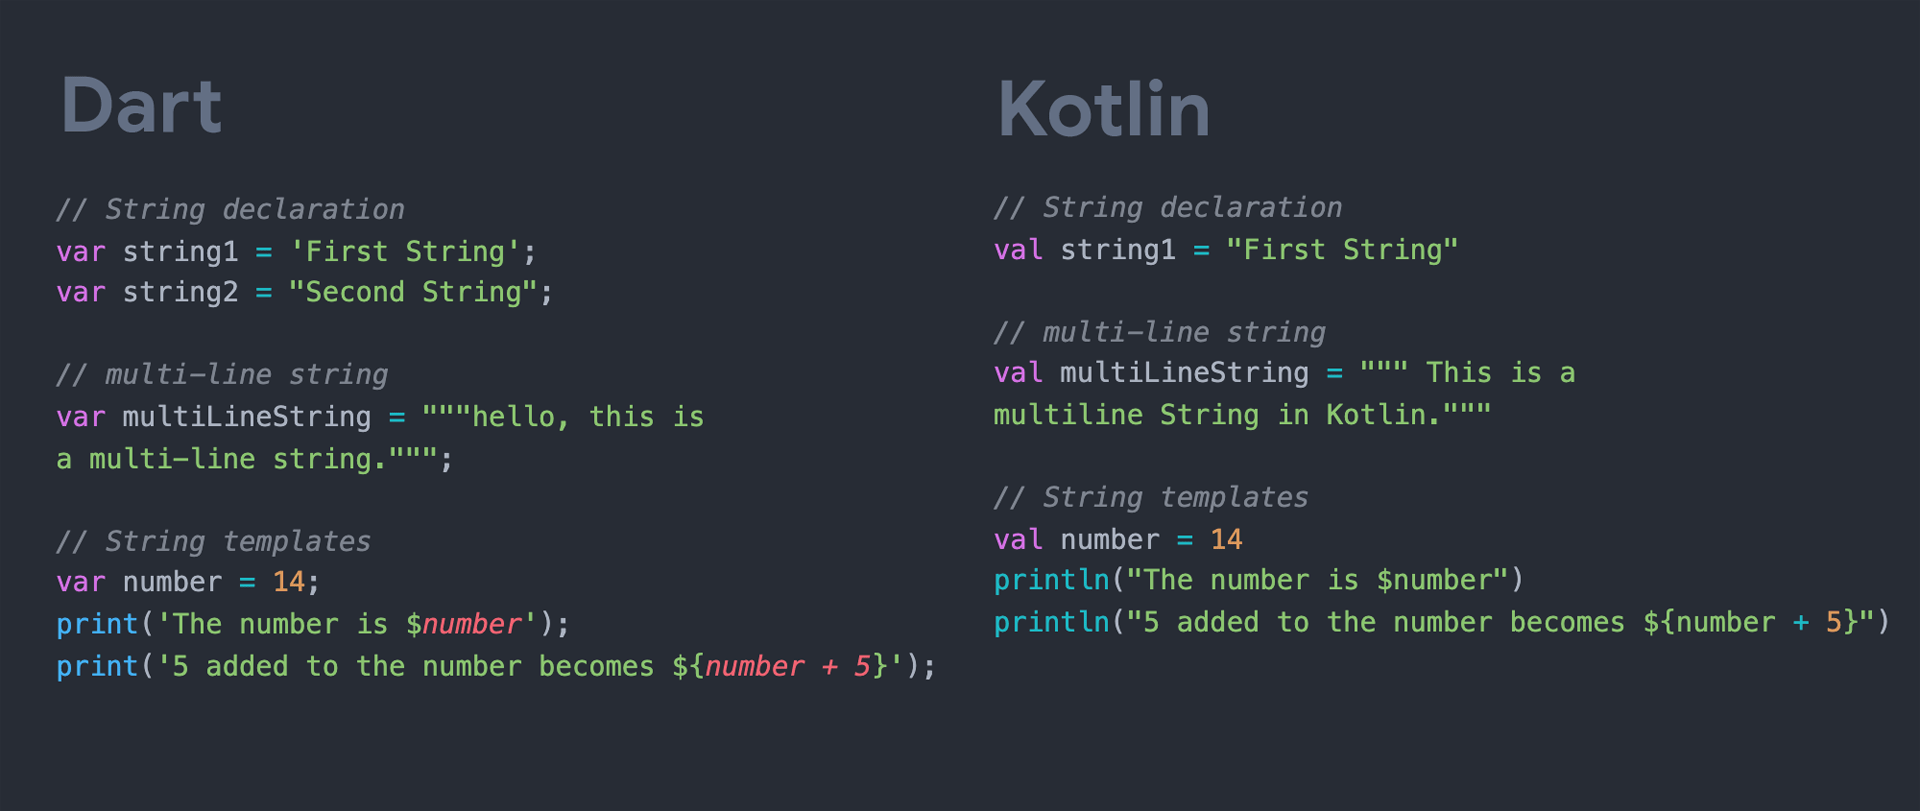 Dart vs Kotlin: Strings